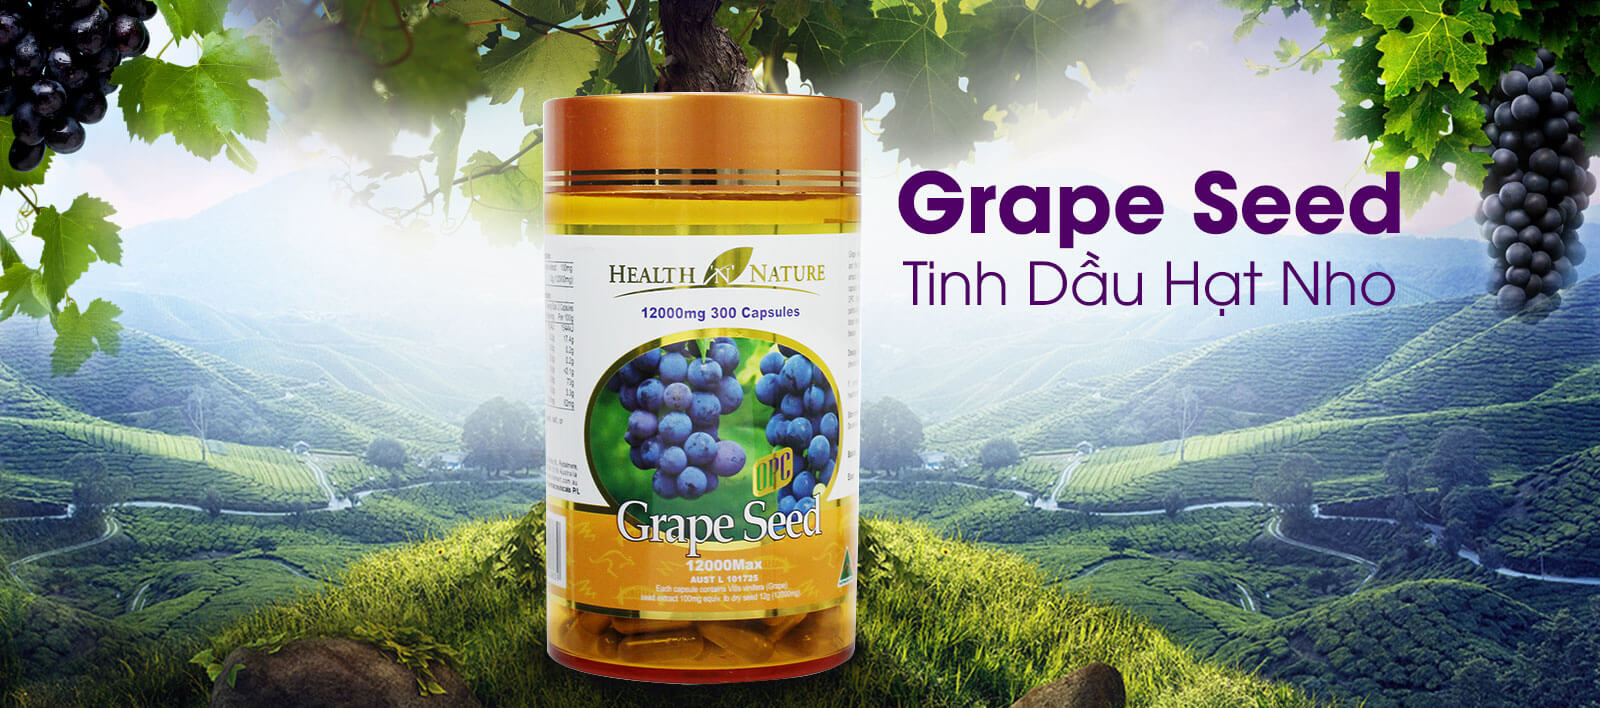 Health N Nature Grape Seed 12000mg - Tinh dầu hạt nho